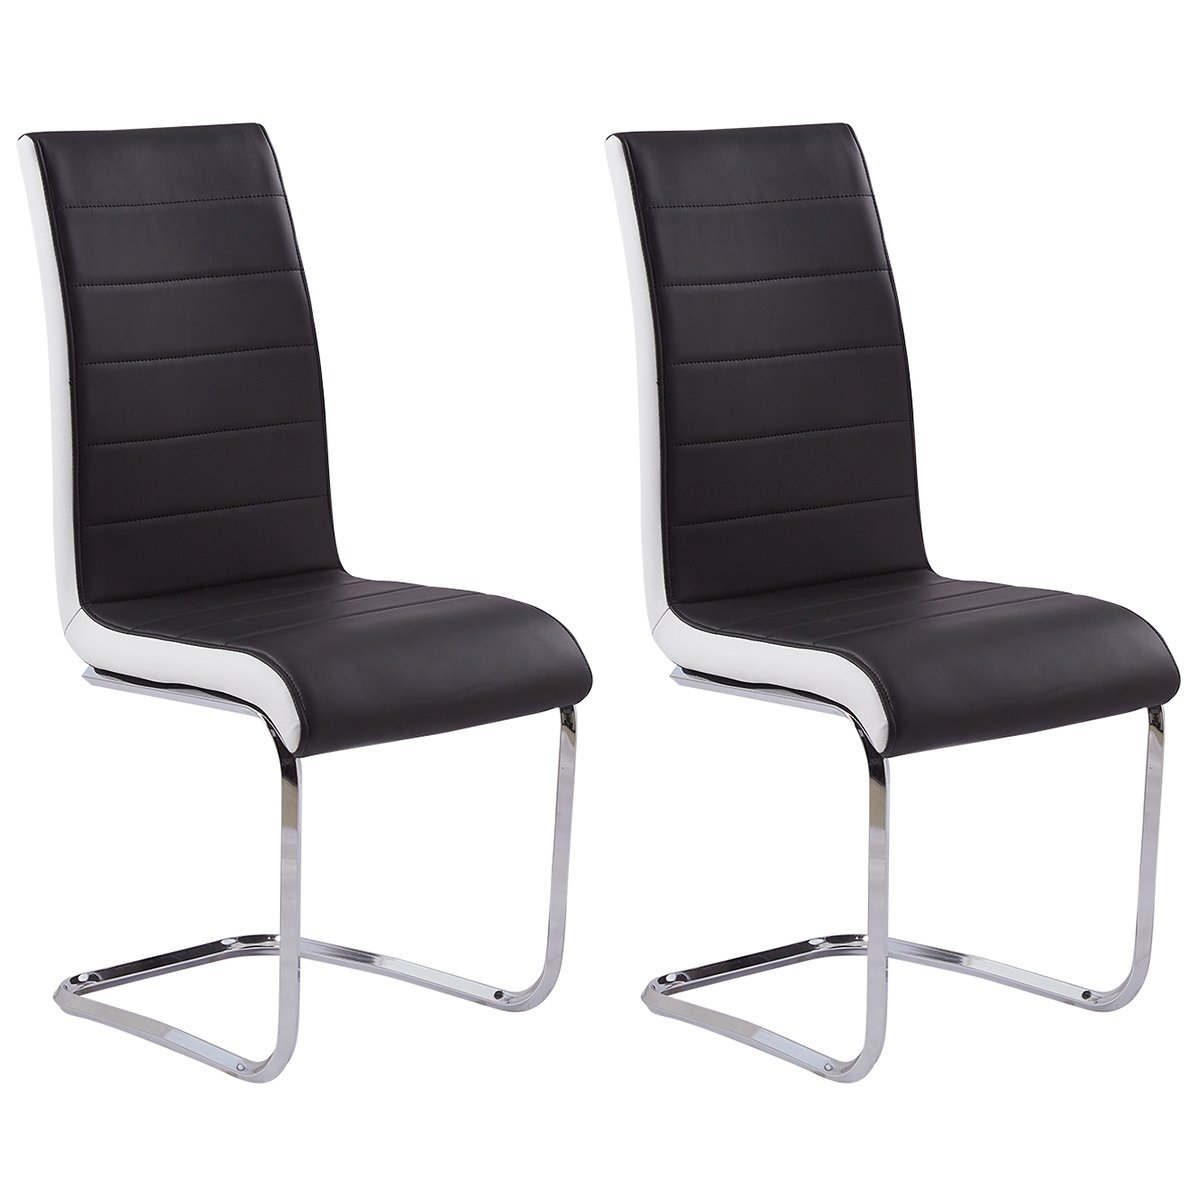 GIZZA DINING CHAIRS MODERN ARTIFICIAL LEATHER BLACK WHITE METAL CHROME LEGS HIGH BACK HOME OFFICE FURNITURE (2 Chairs)